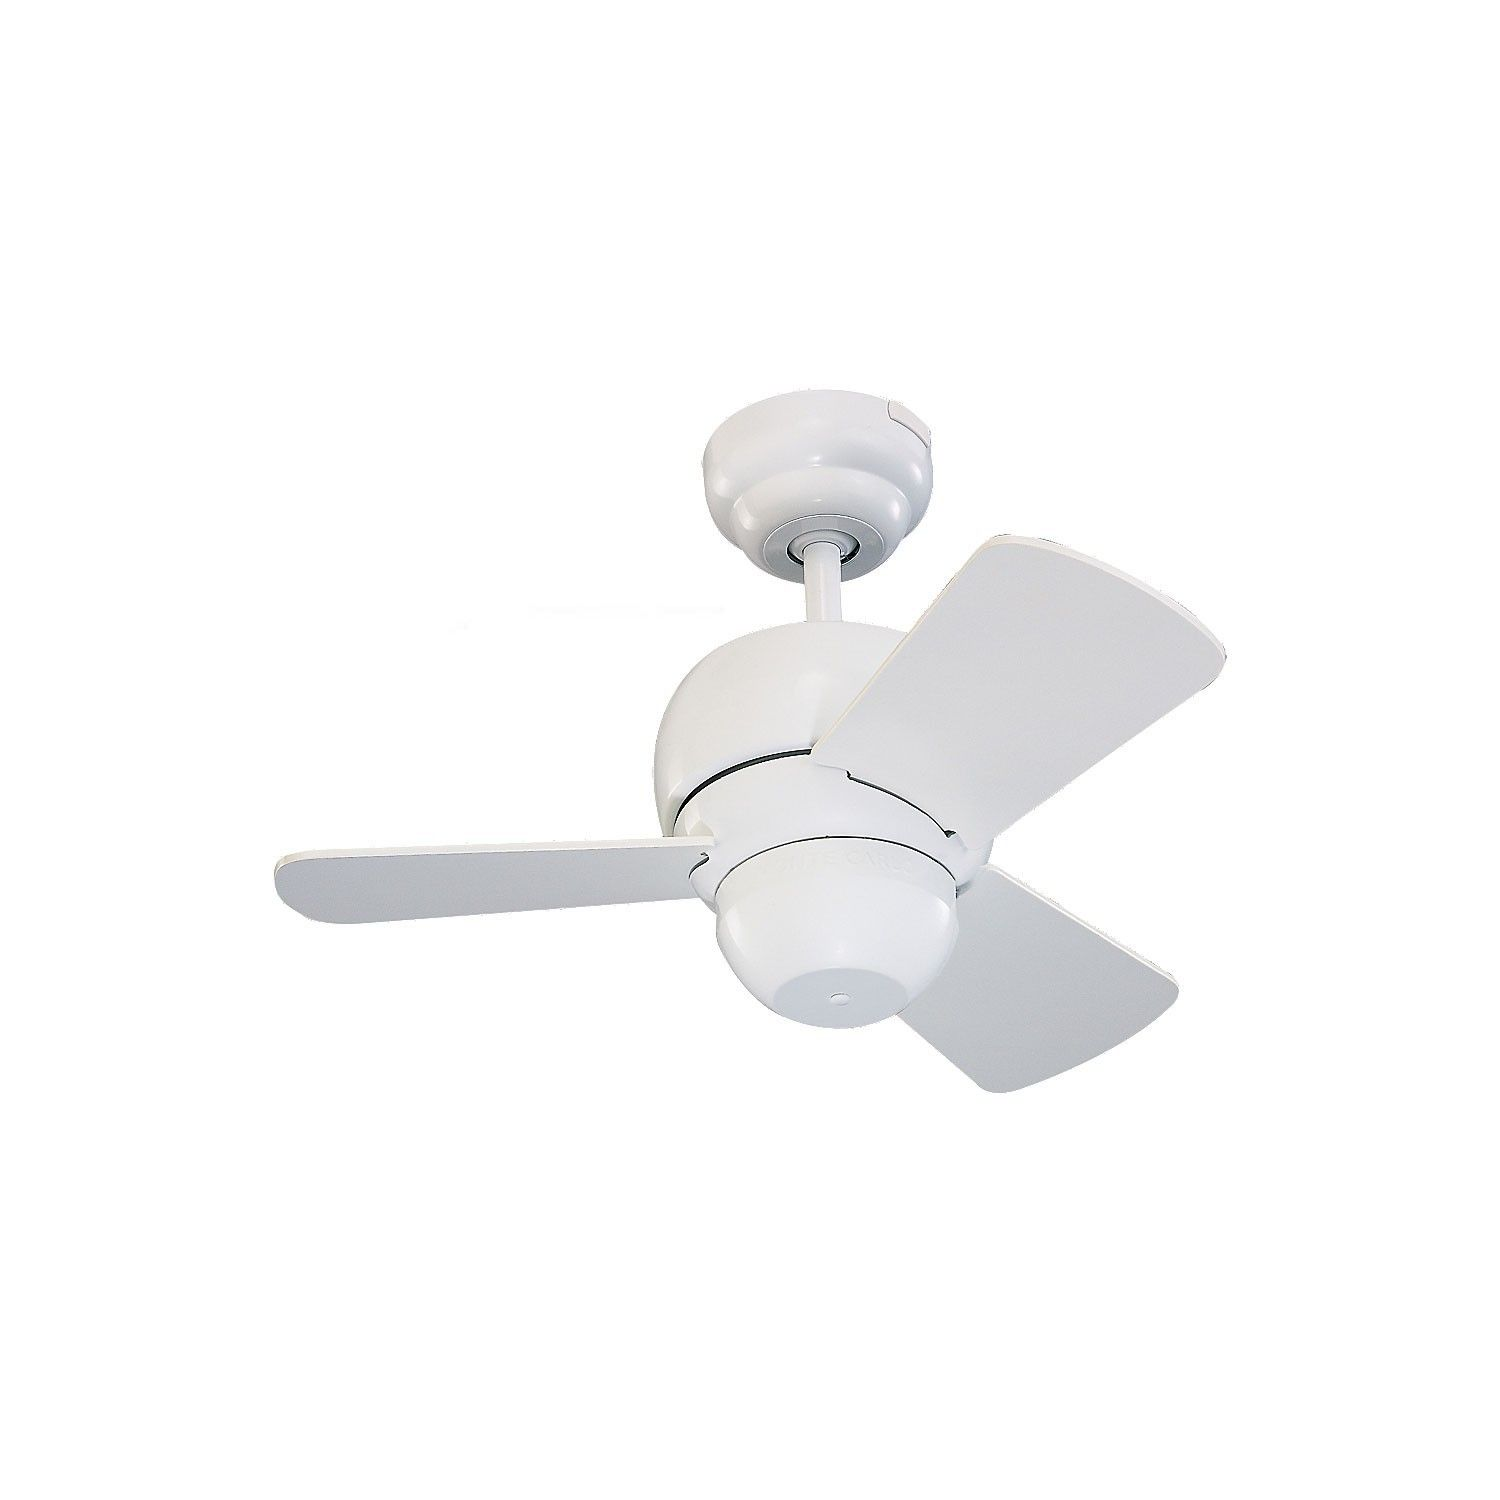 Neglected Small Spaces Arise This Little 24 Inch Dynamo Of A Fan Is A Breath Of Fresh Air Ceiling Fan Ceiling Fan Light Kit Modern Ceiling Fan